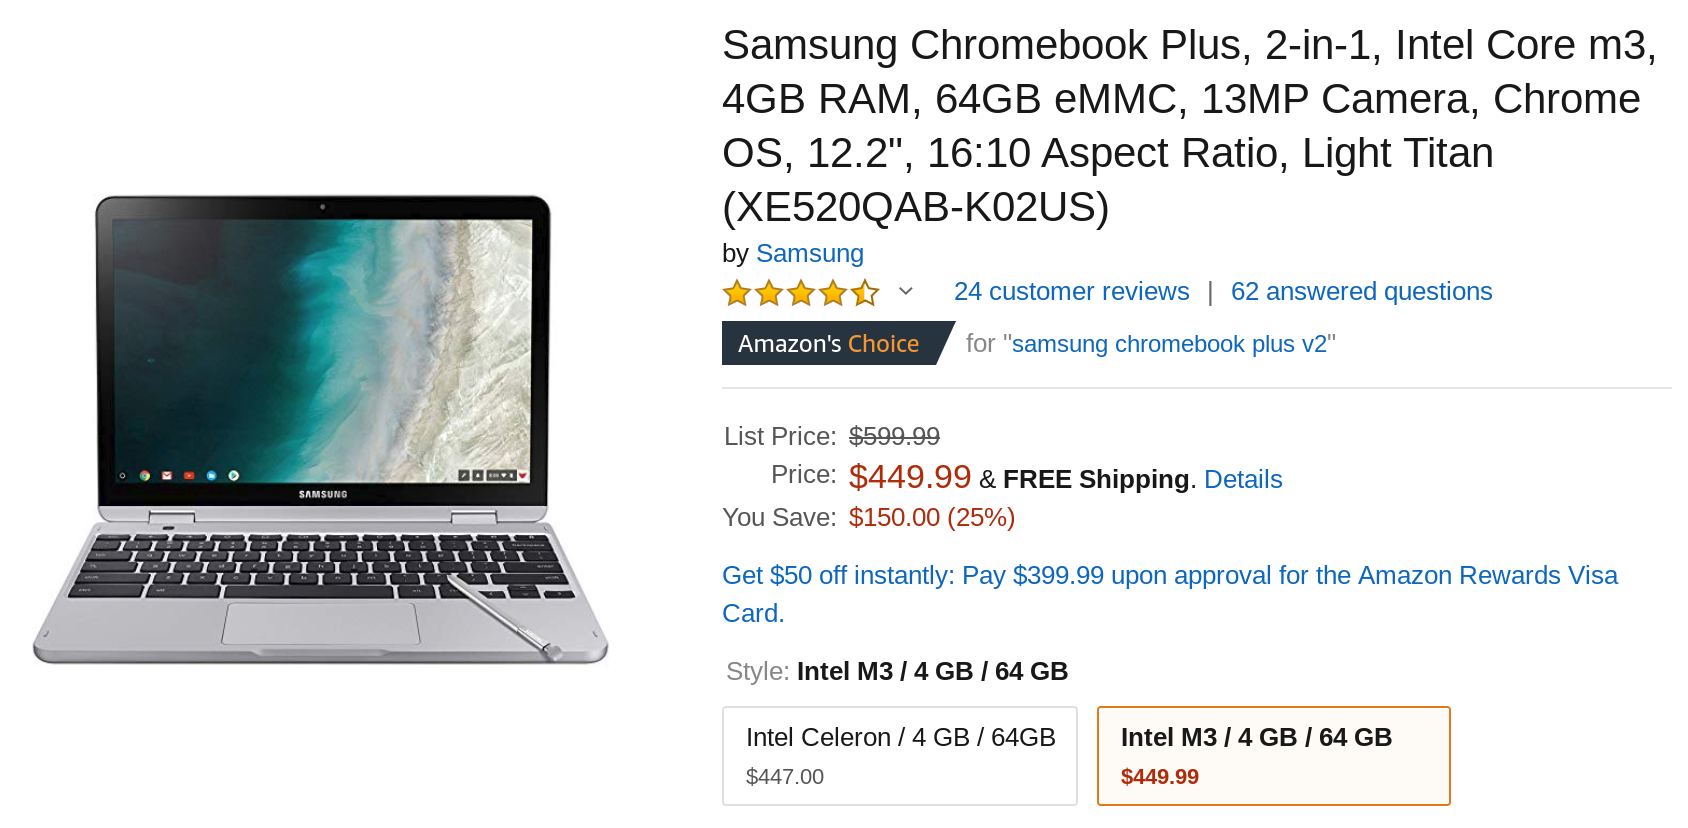 Get a Core m3 Samsung Chromebook Plus V2 for $450 ($150 off)